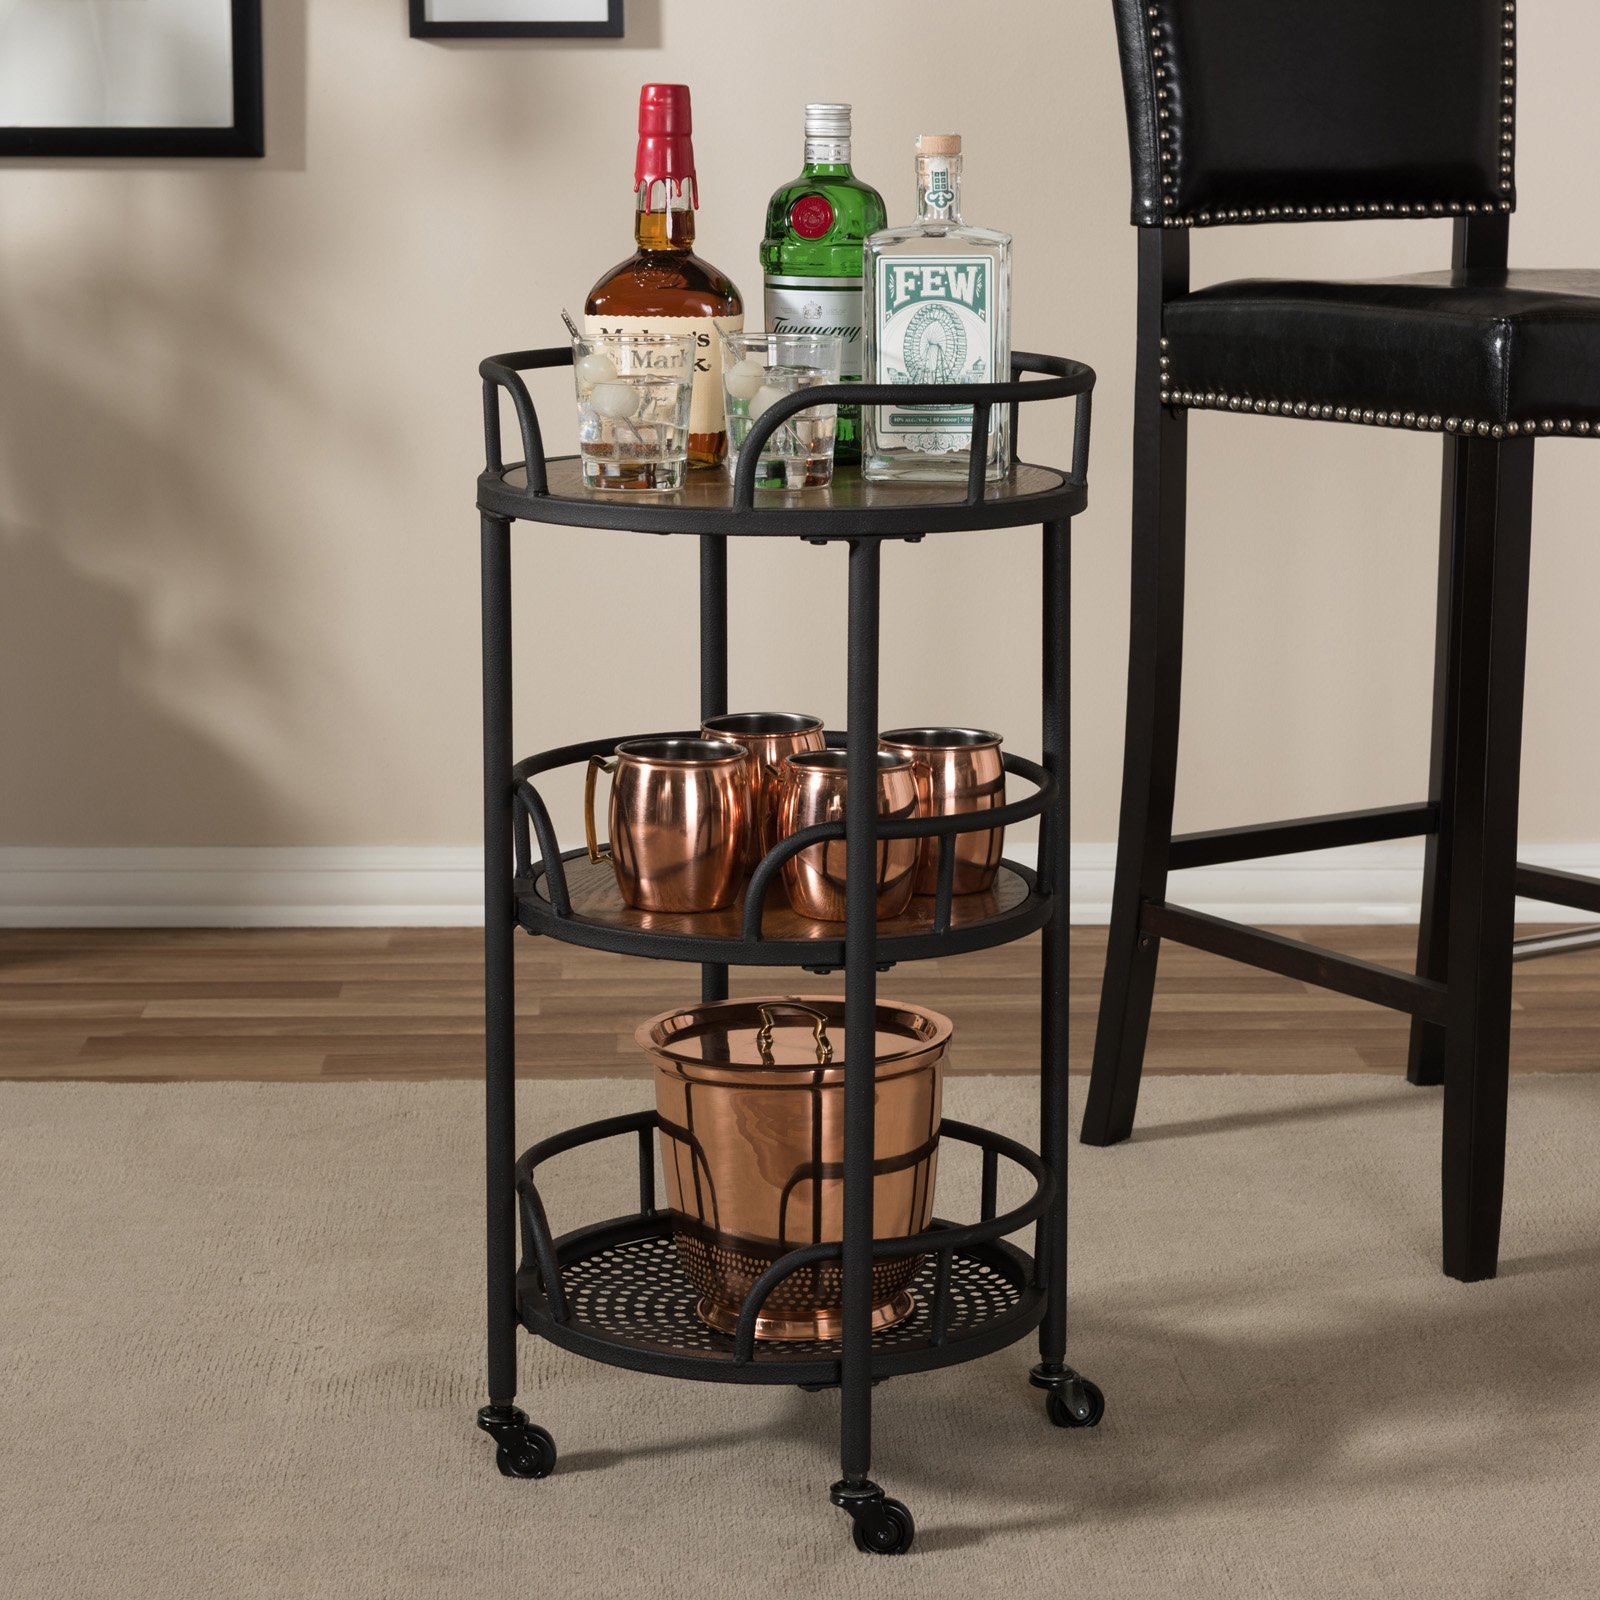 Baxton Studio Bristol Metal and Wood Mobile Serving Cart